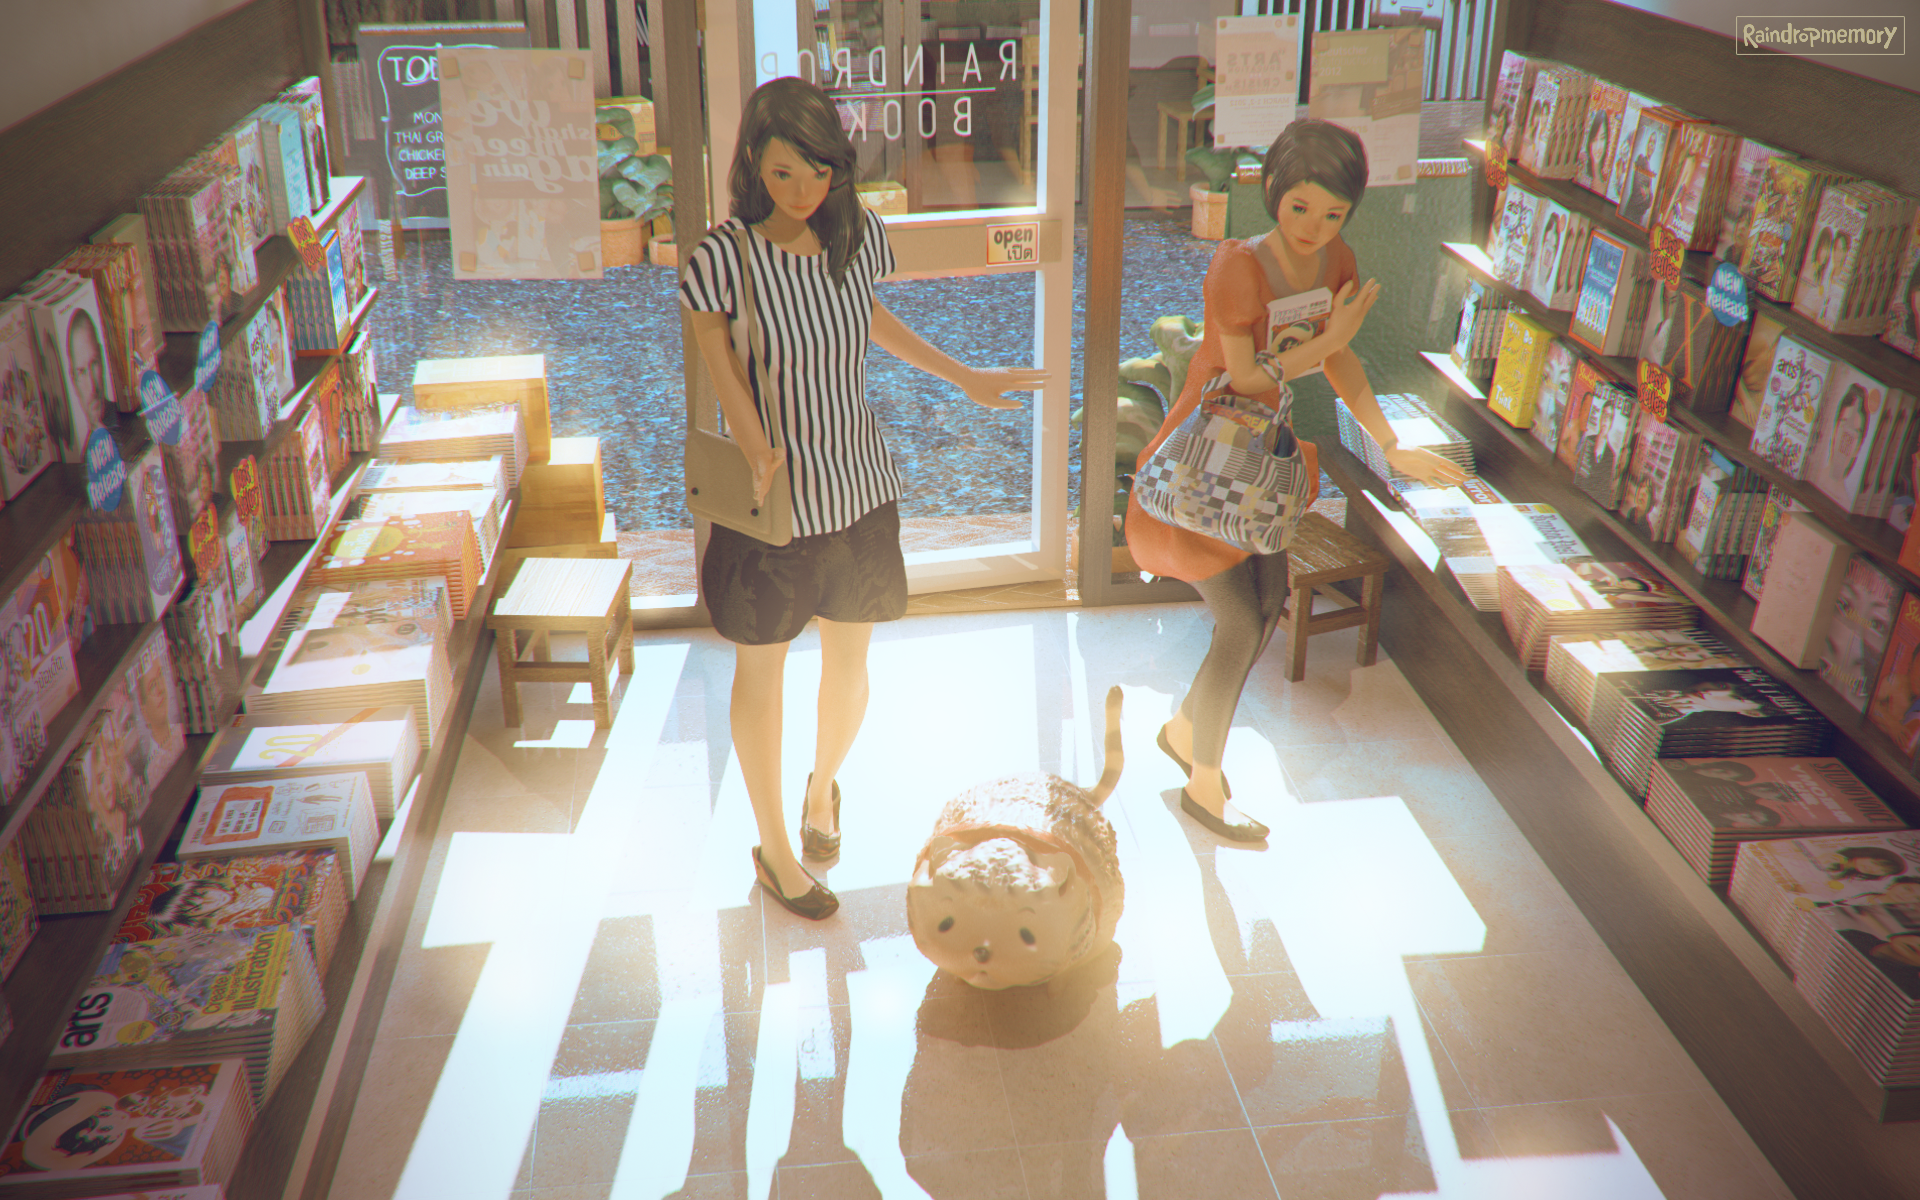 Meeting at Bookstore x Chubby Kitty by Raindropmemory